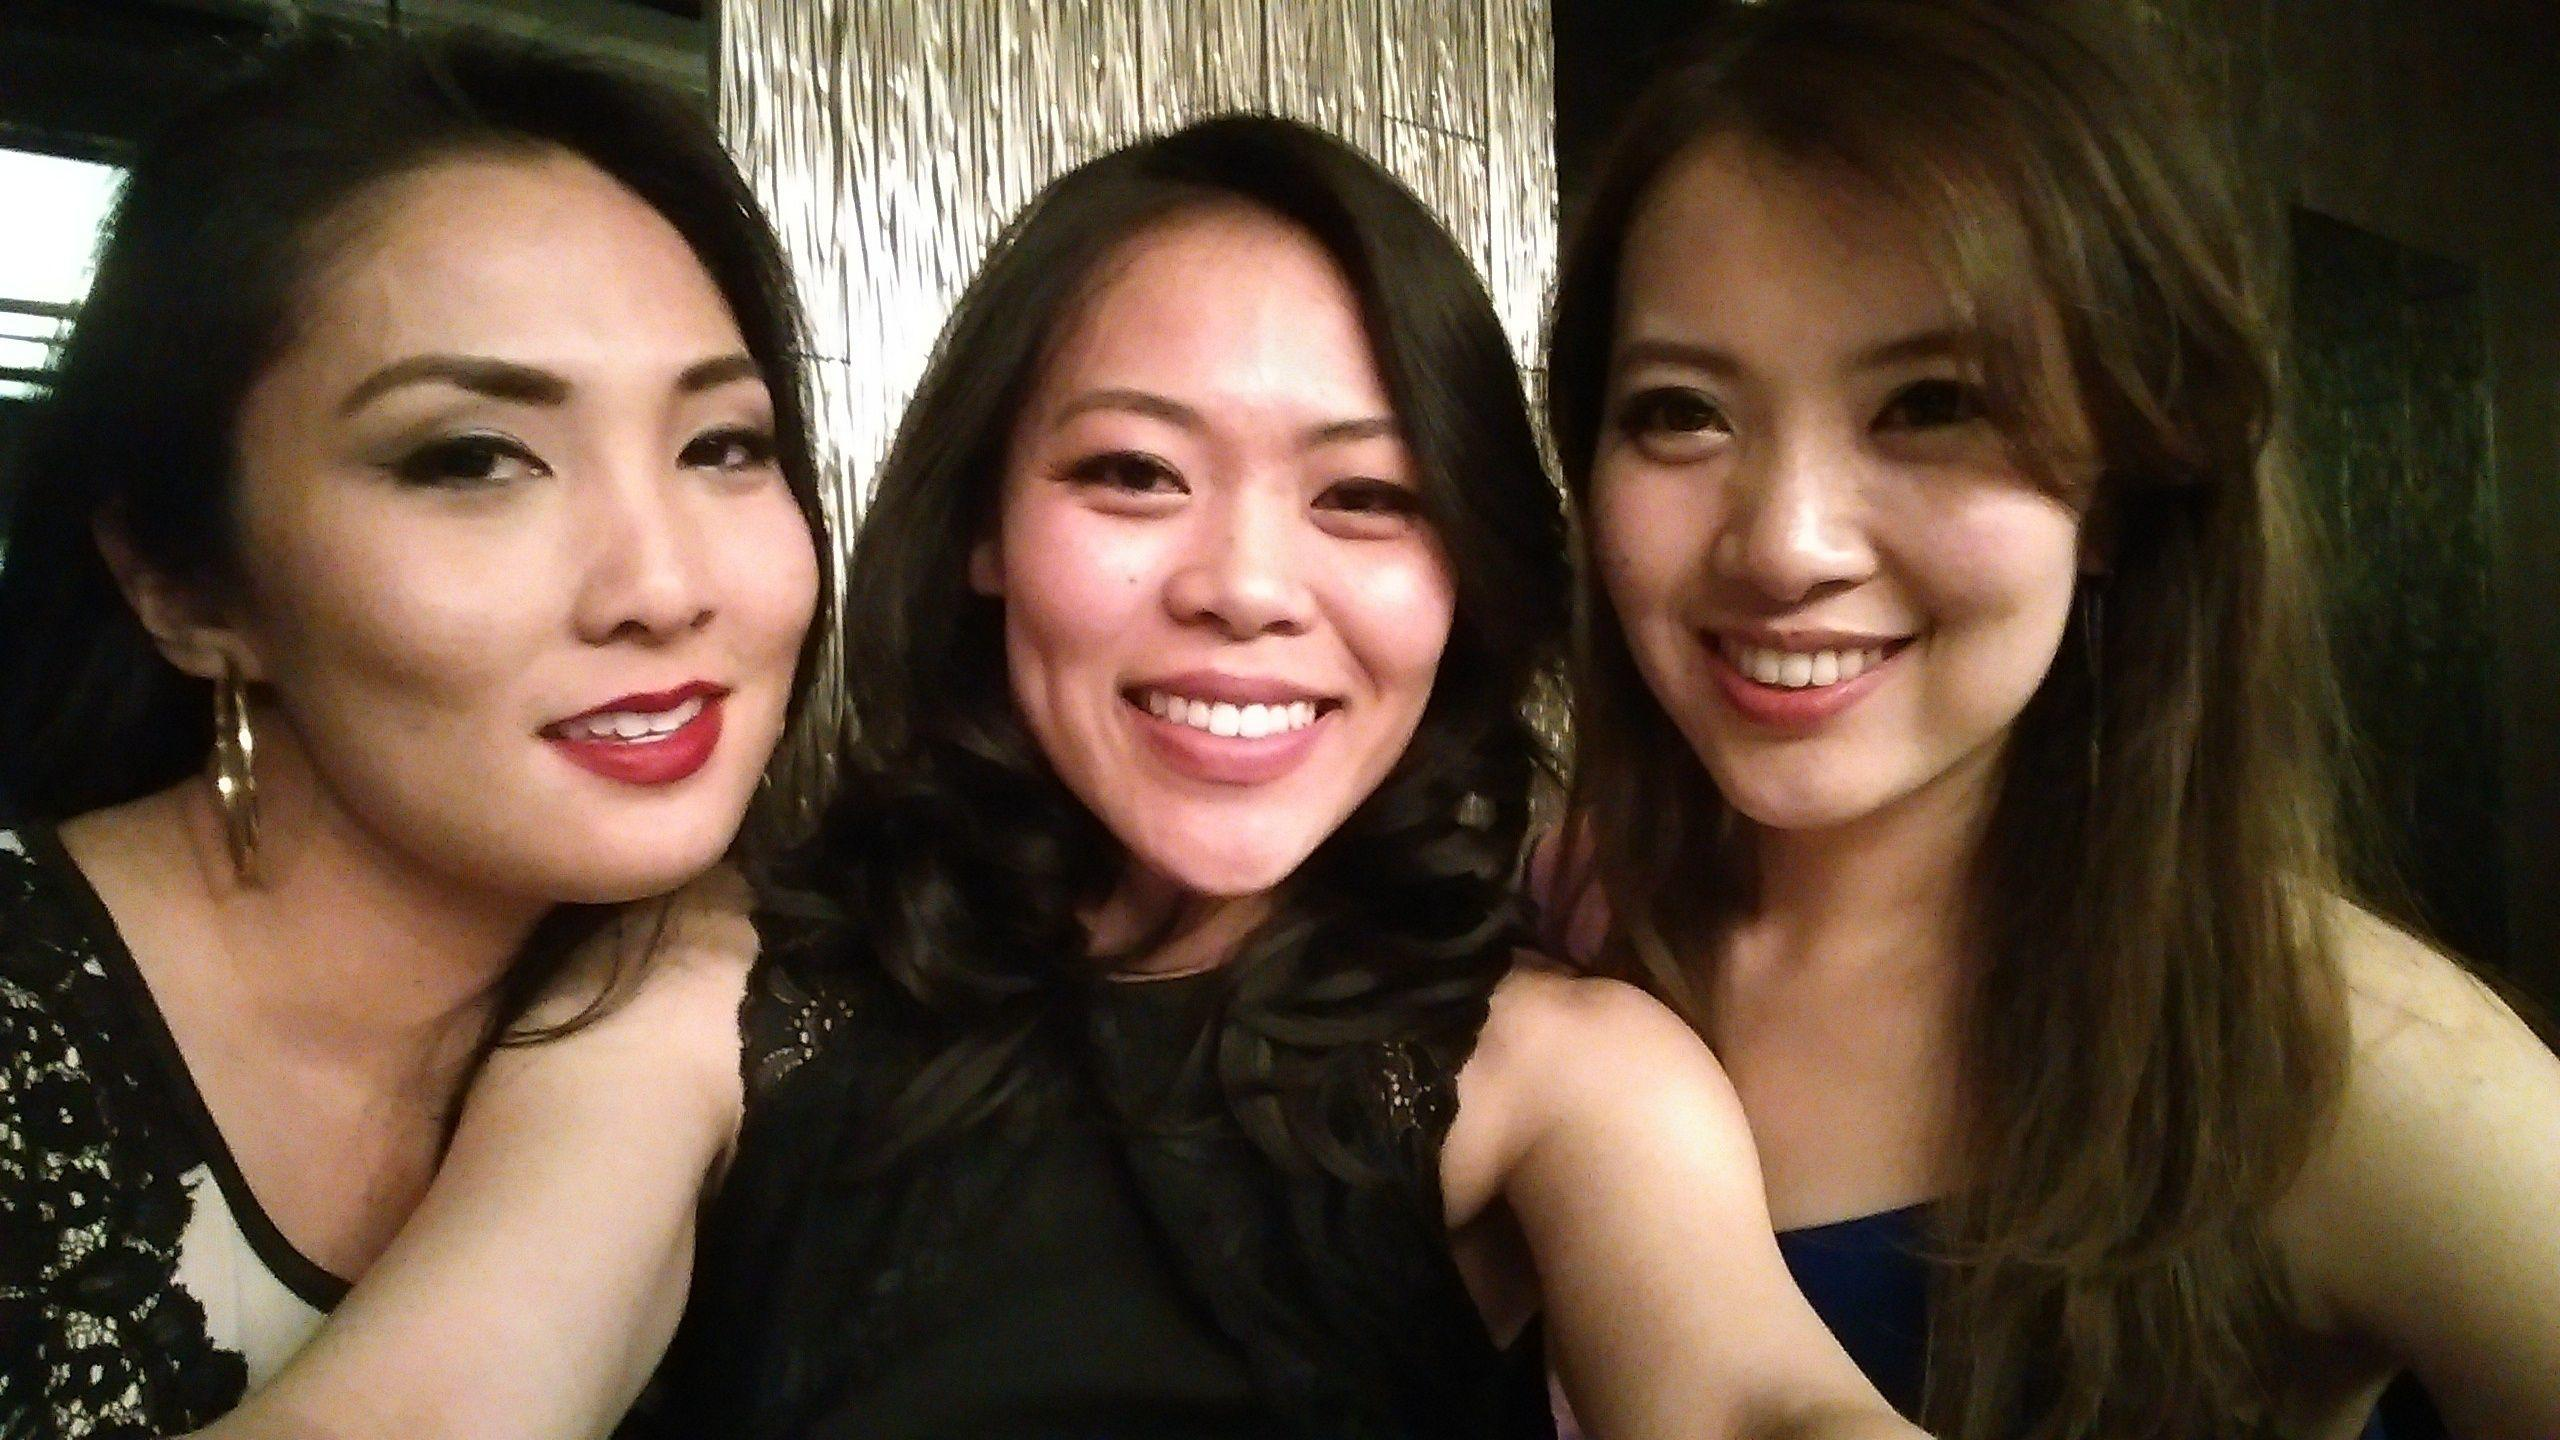 asian singles in arcadia Arcadia is a city in the san gabriel valley and one of the 272  the percentage of asian people is high for  there are 1,392 families headed by single.